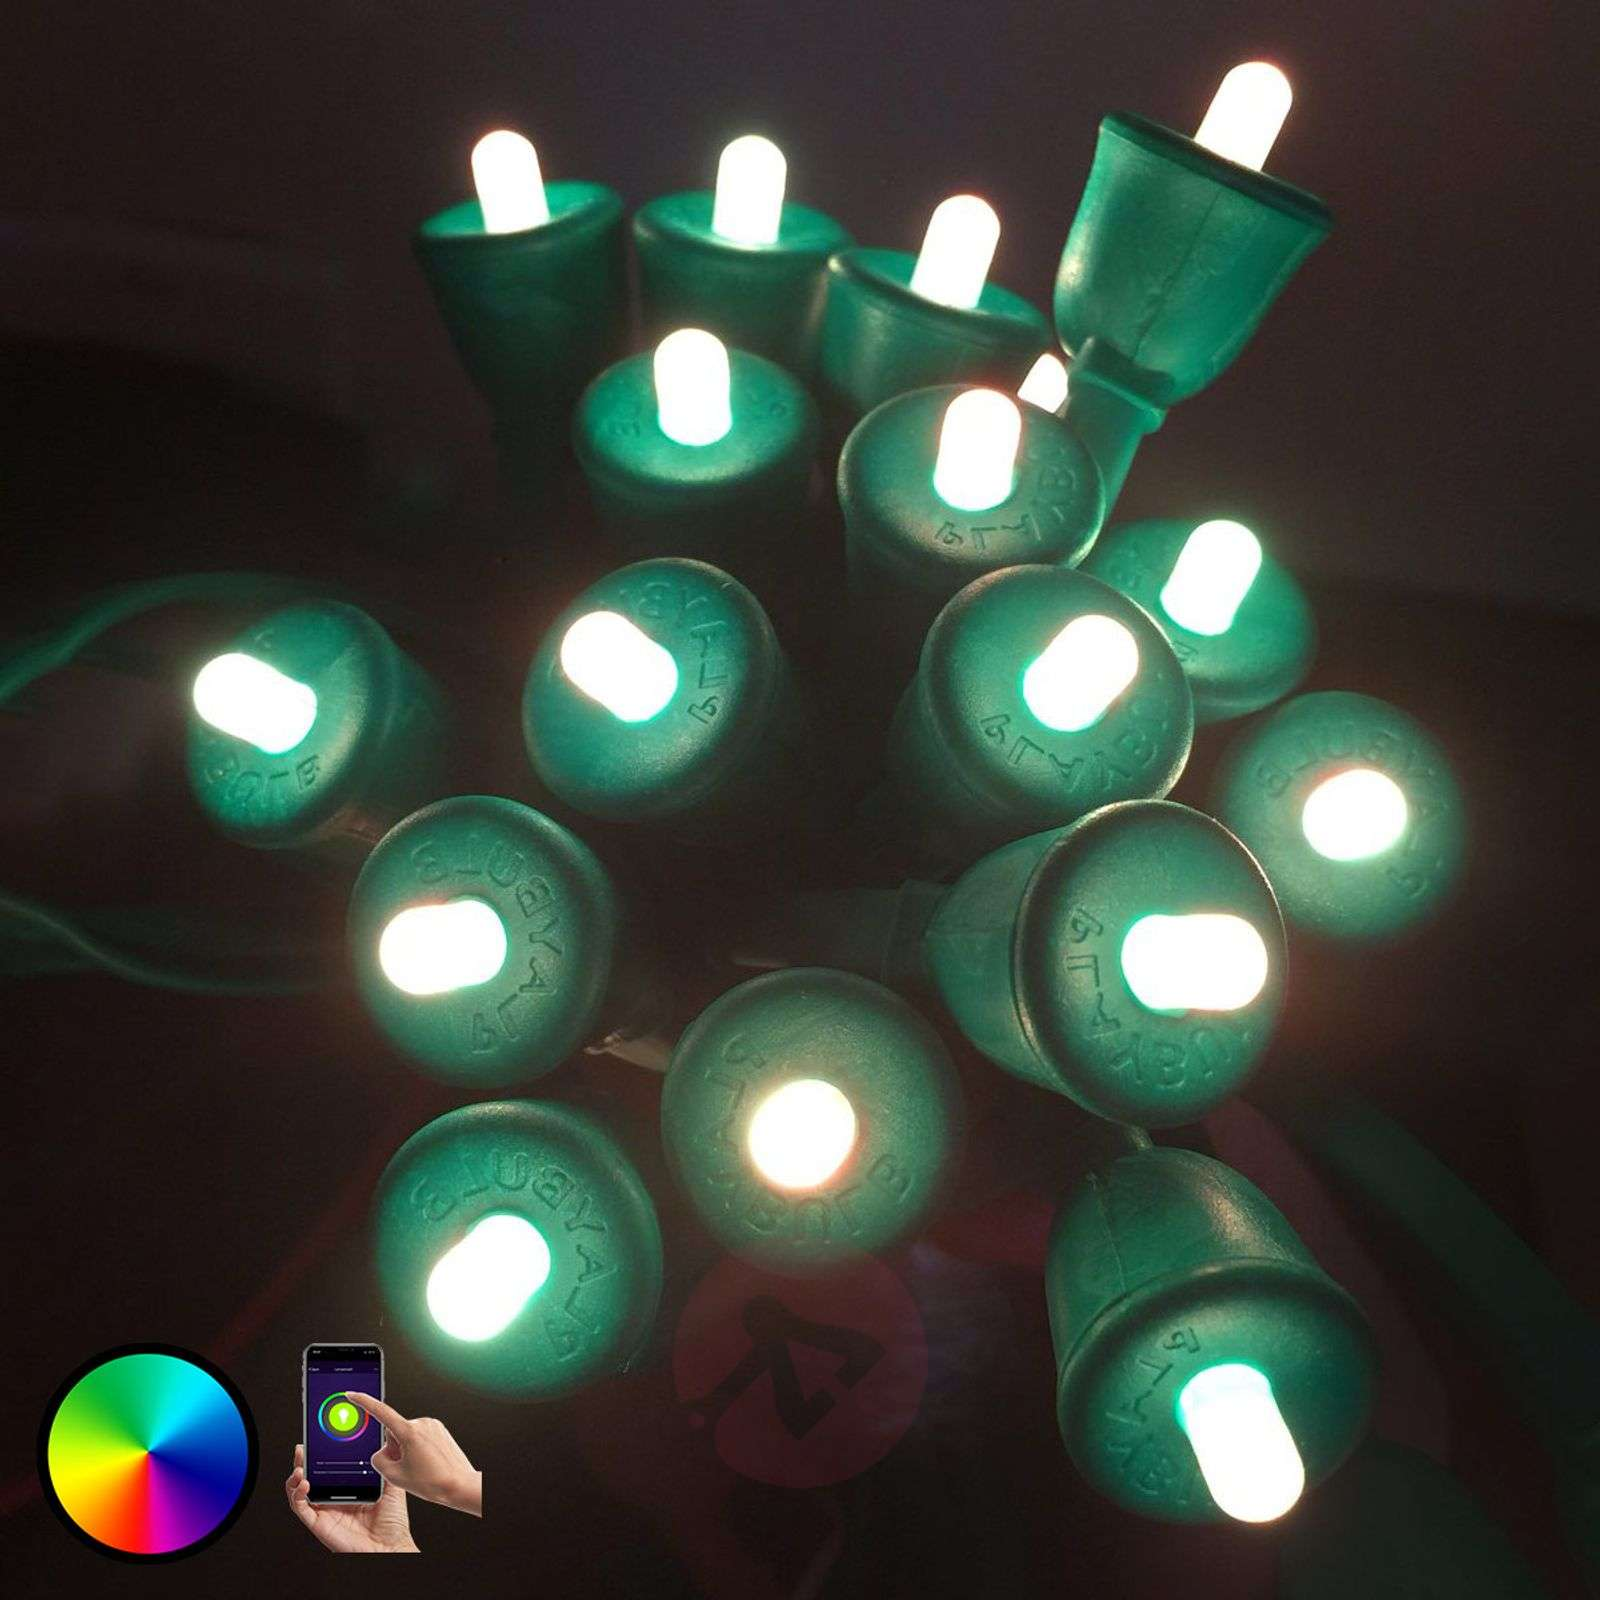 MiPow Playbulb String catena LED 20 m, verde-5543027-010